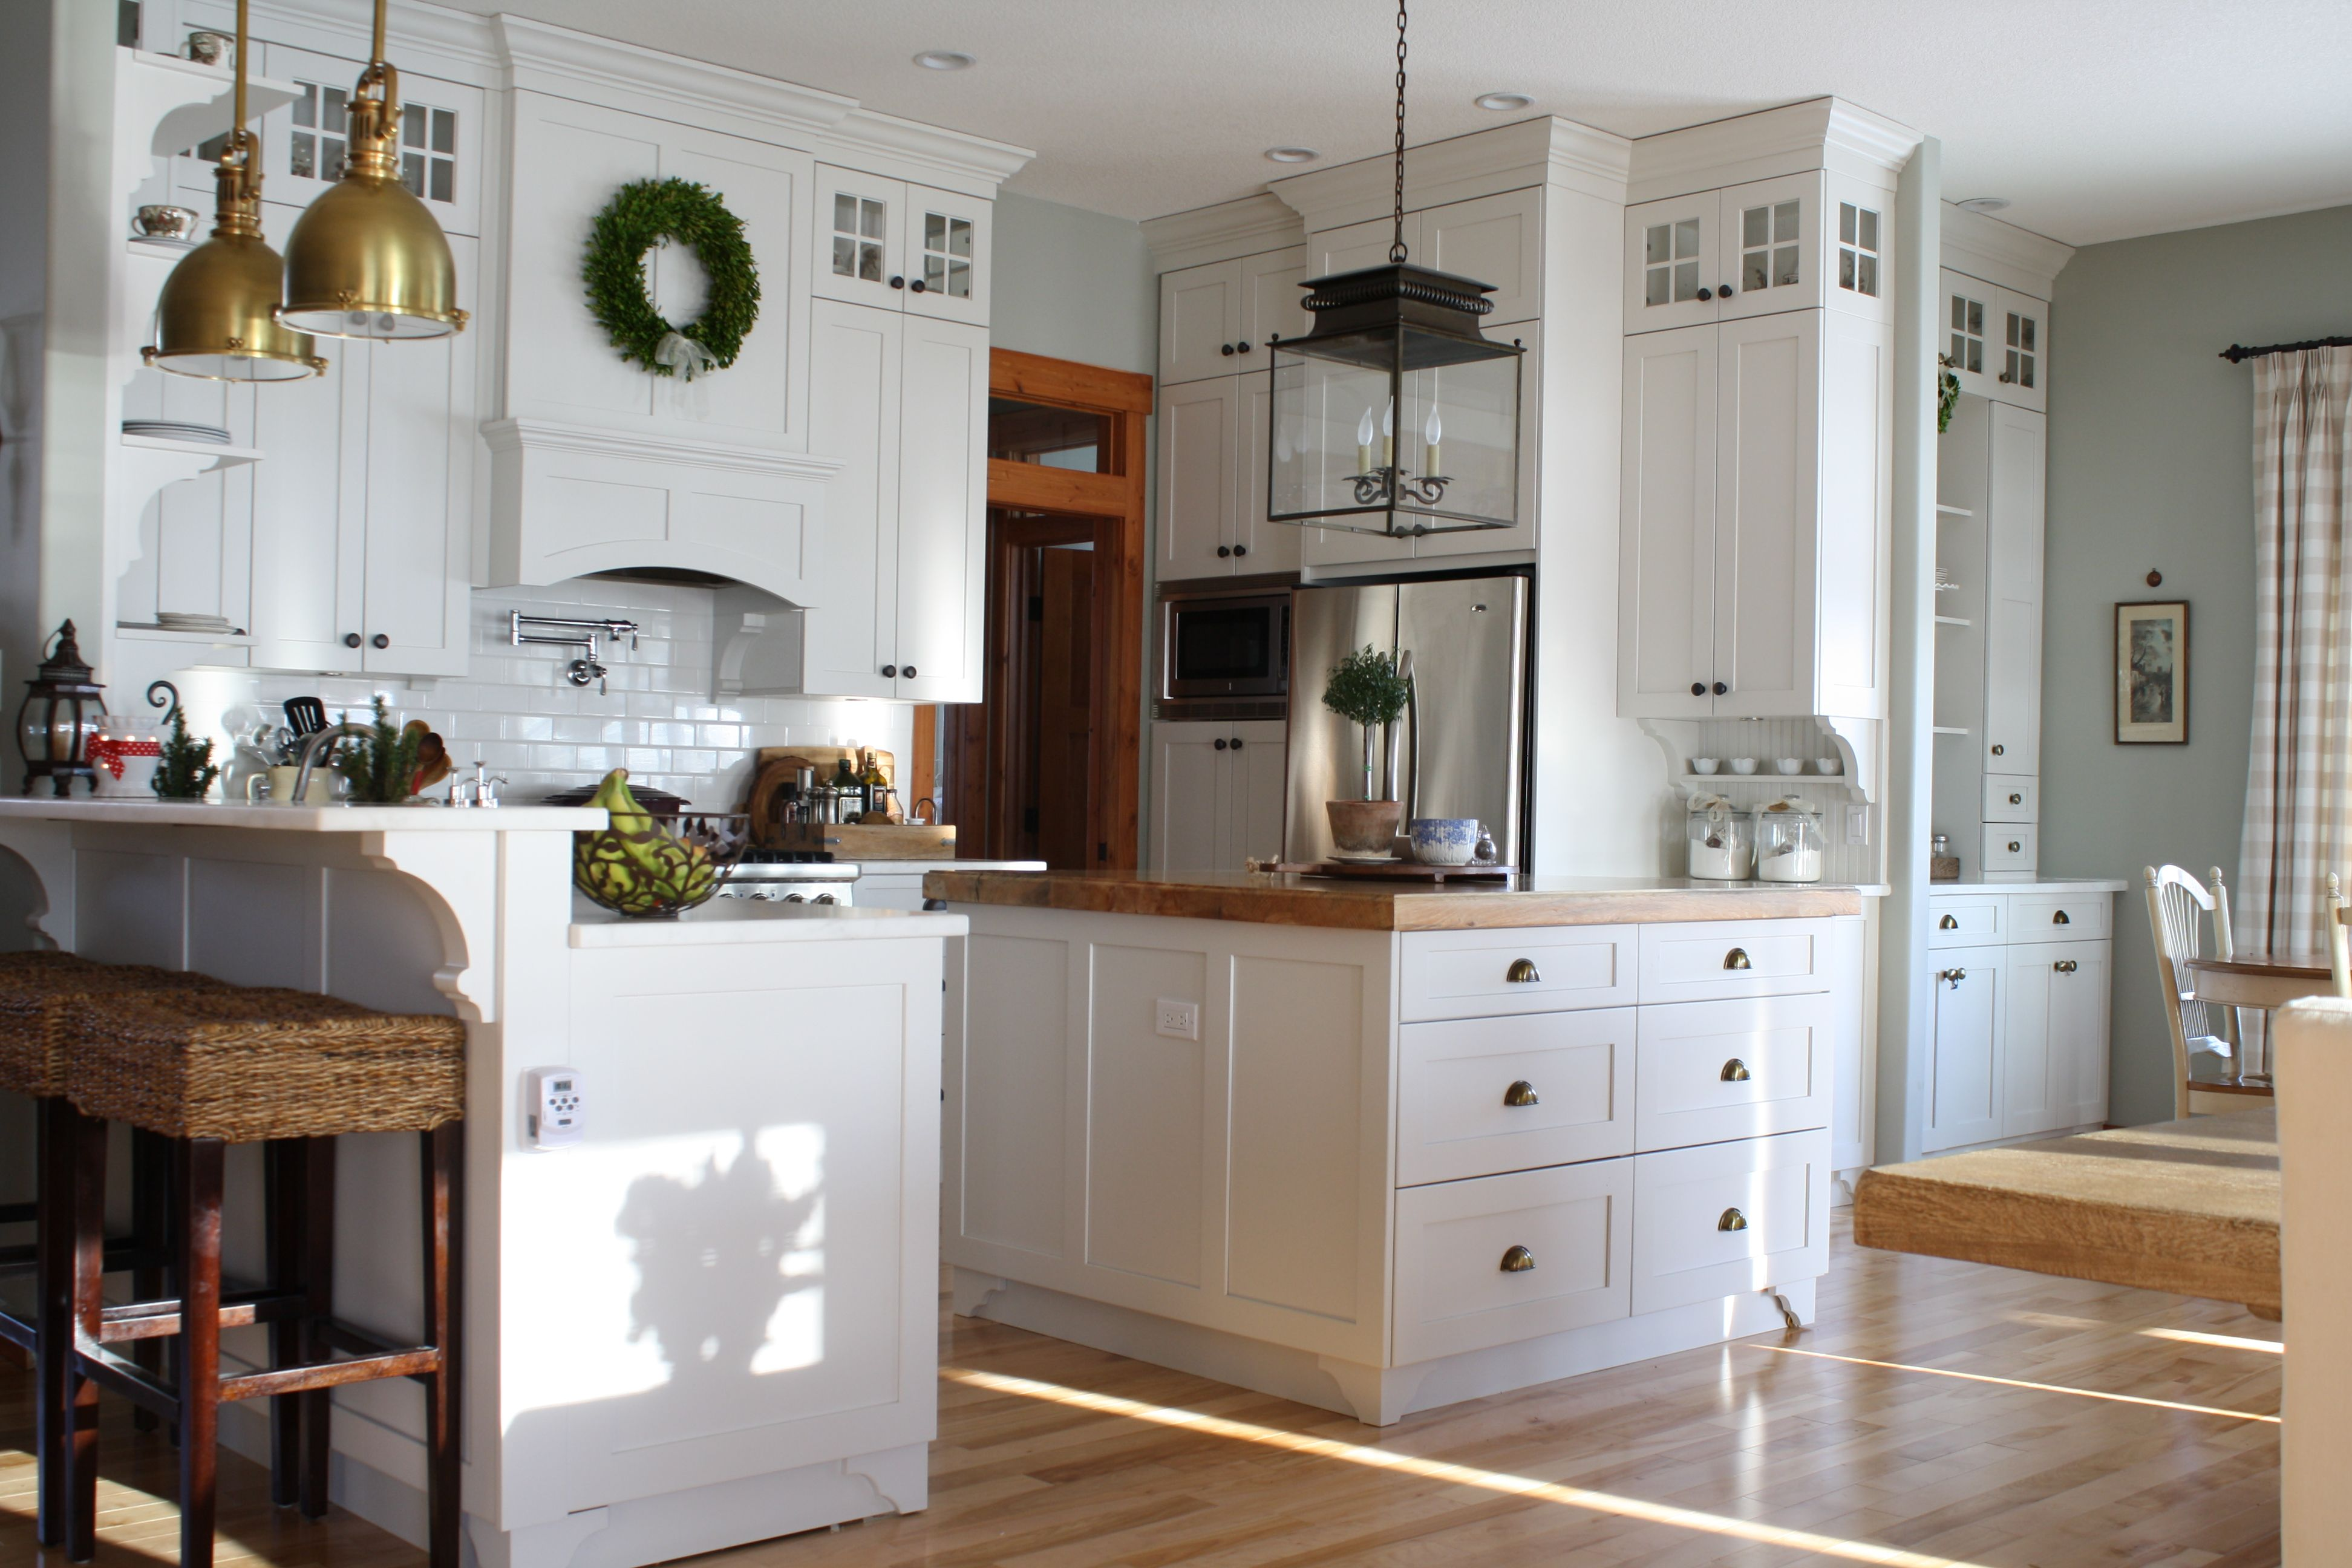 Canadian Cottage Holly Mathis Interiors Diy kitchen